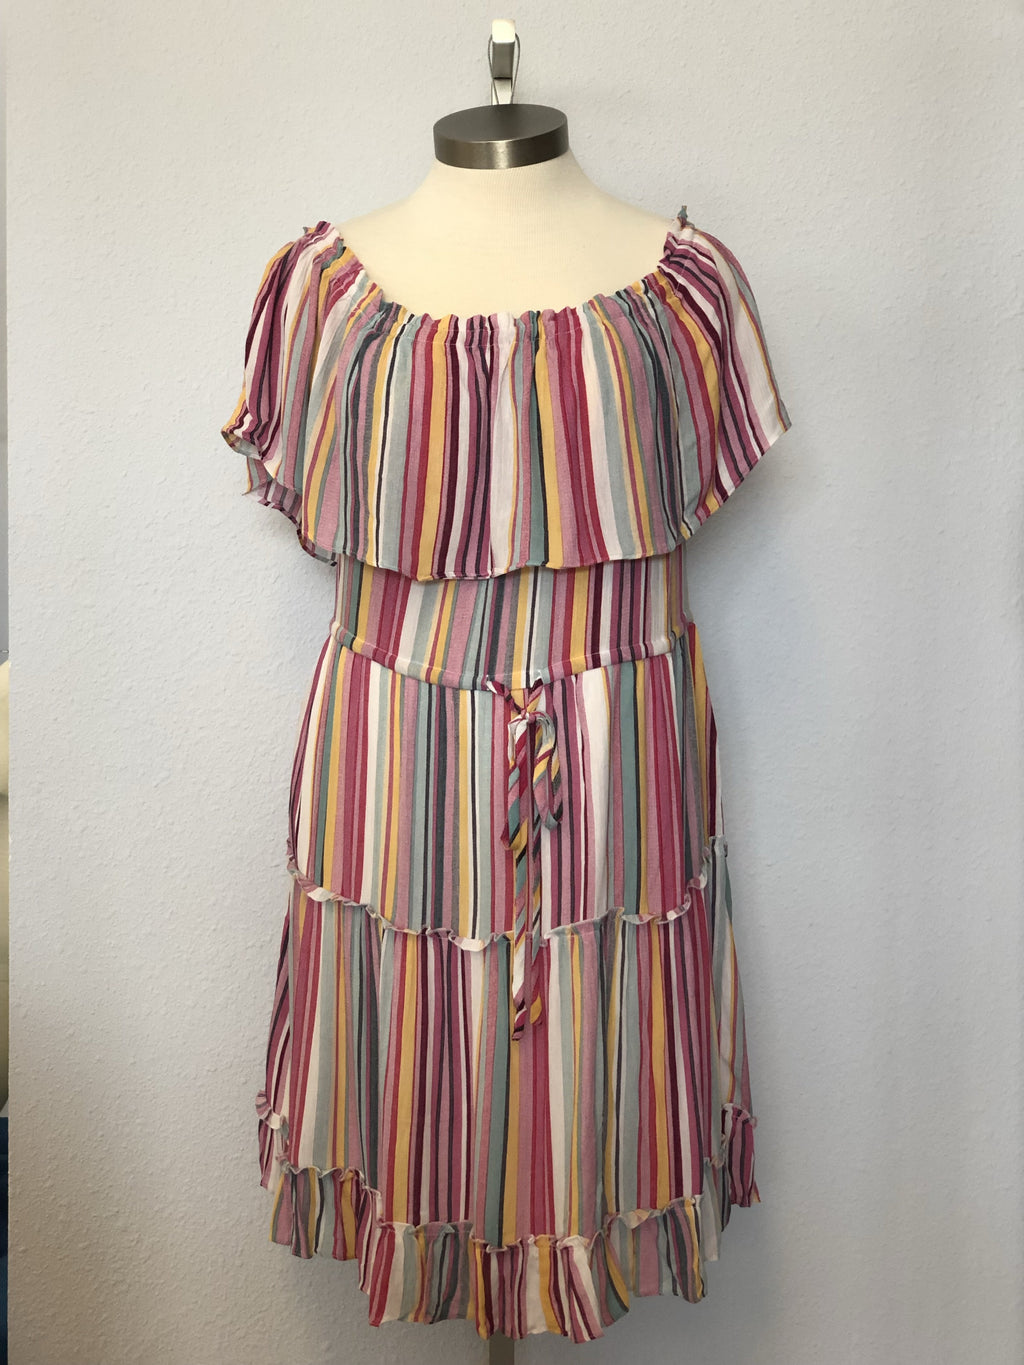 MULTI-COLORED OFF-SHOULDER DRESS